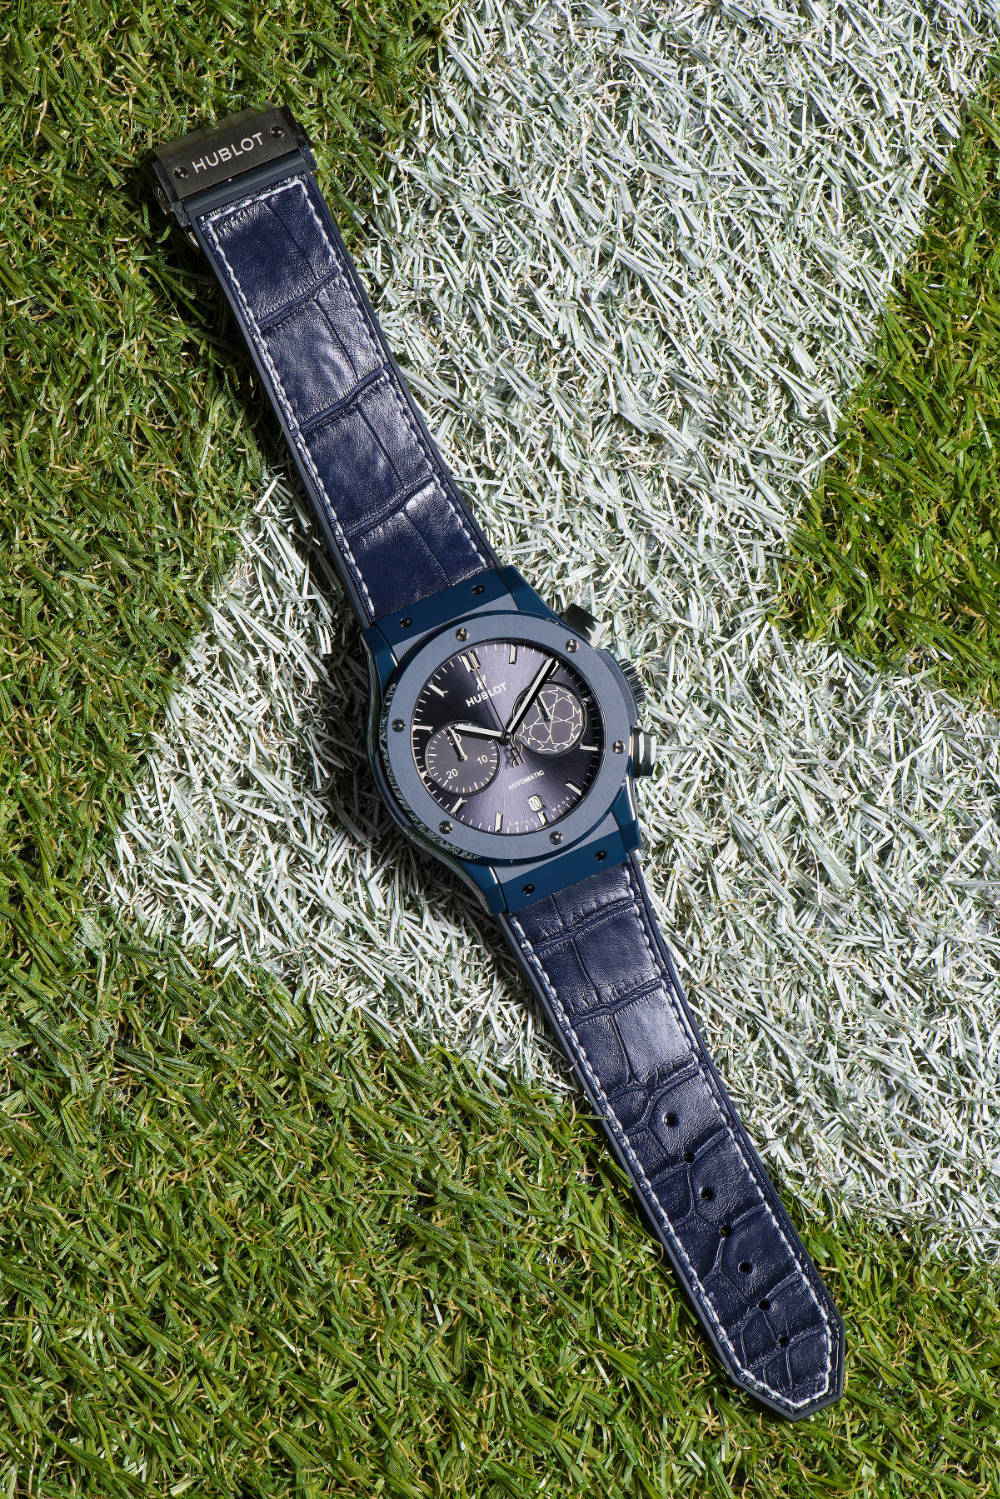 Hublot Loves Football – 2018 in Review - The Hour Glass